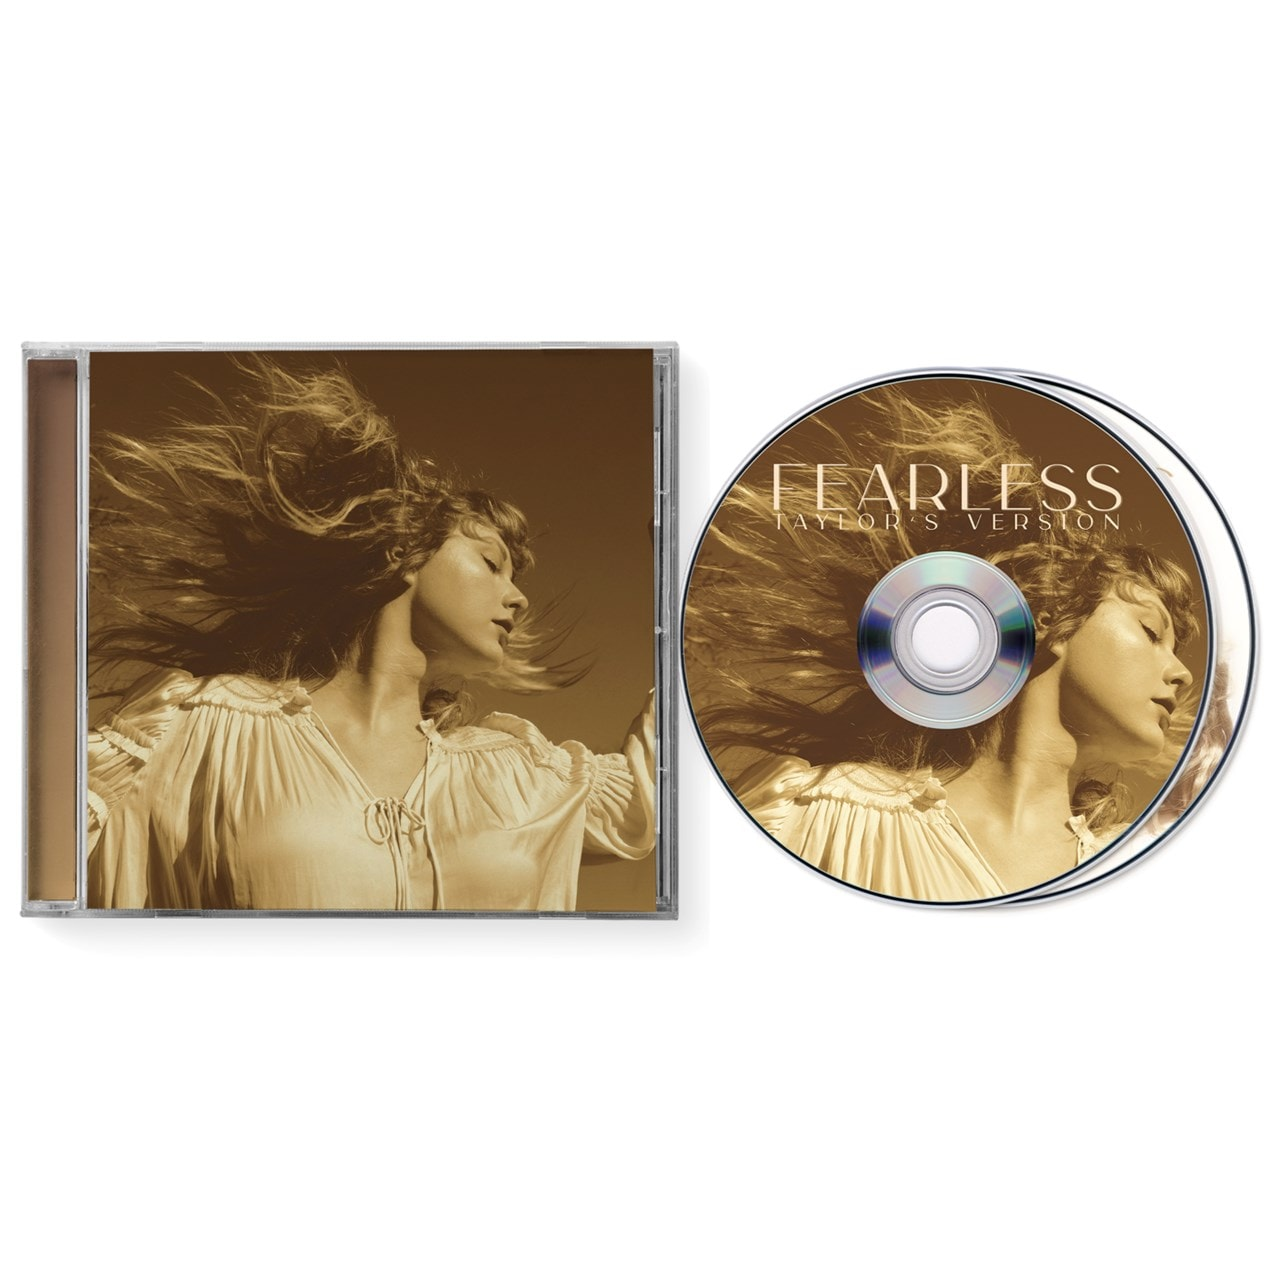 Fearless (Taylor's Version) - 2